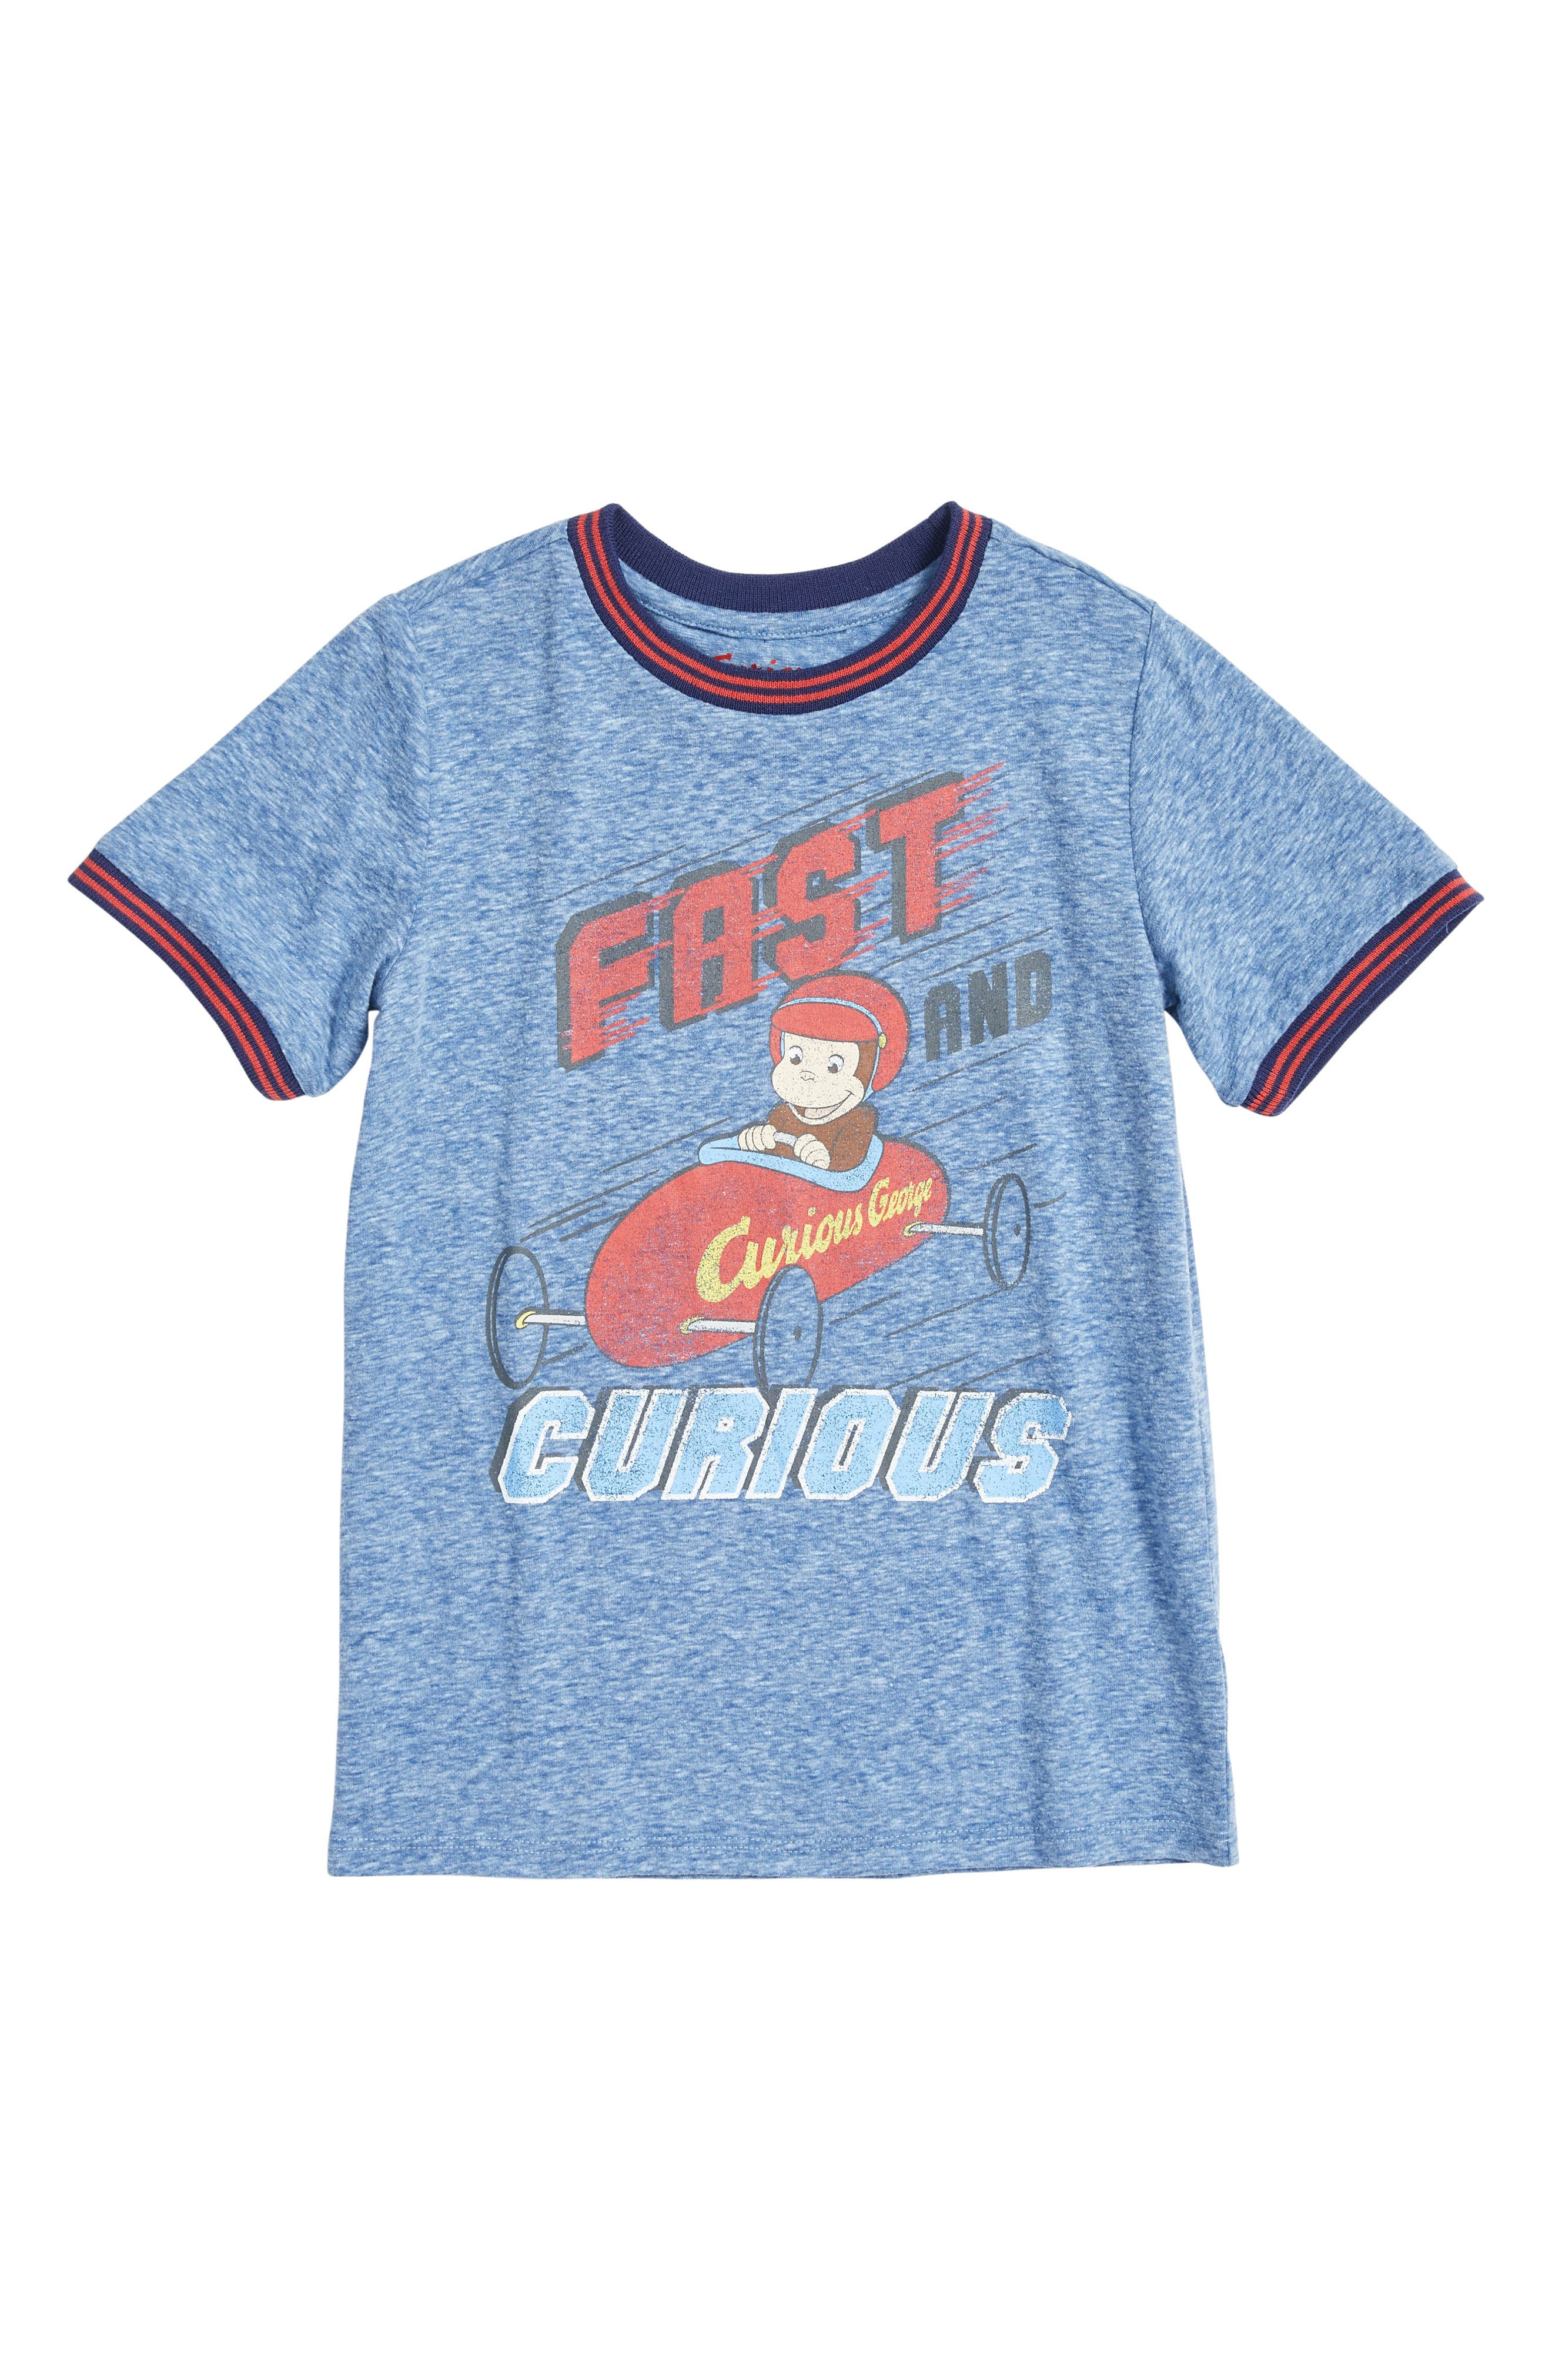 Fast & Curious George Graphic T-Shirt,                             Main thumbnail 1, color,                             450